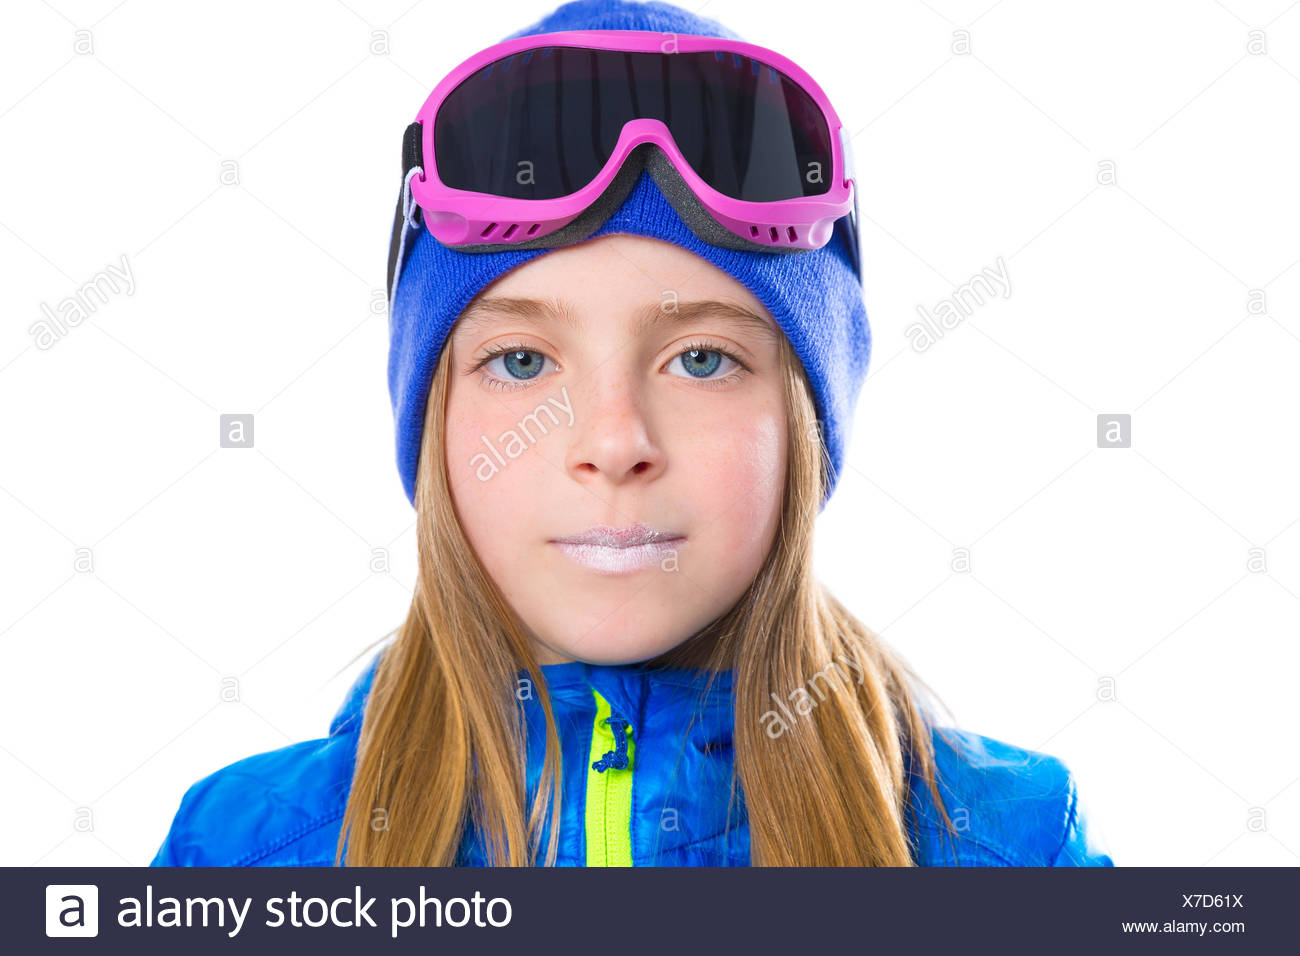 Blond kid girl winter portrait with ski snow goggles and wool hat ... 9fbaa759d610